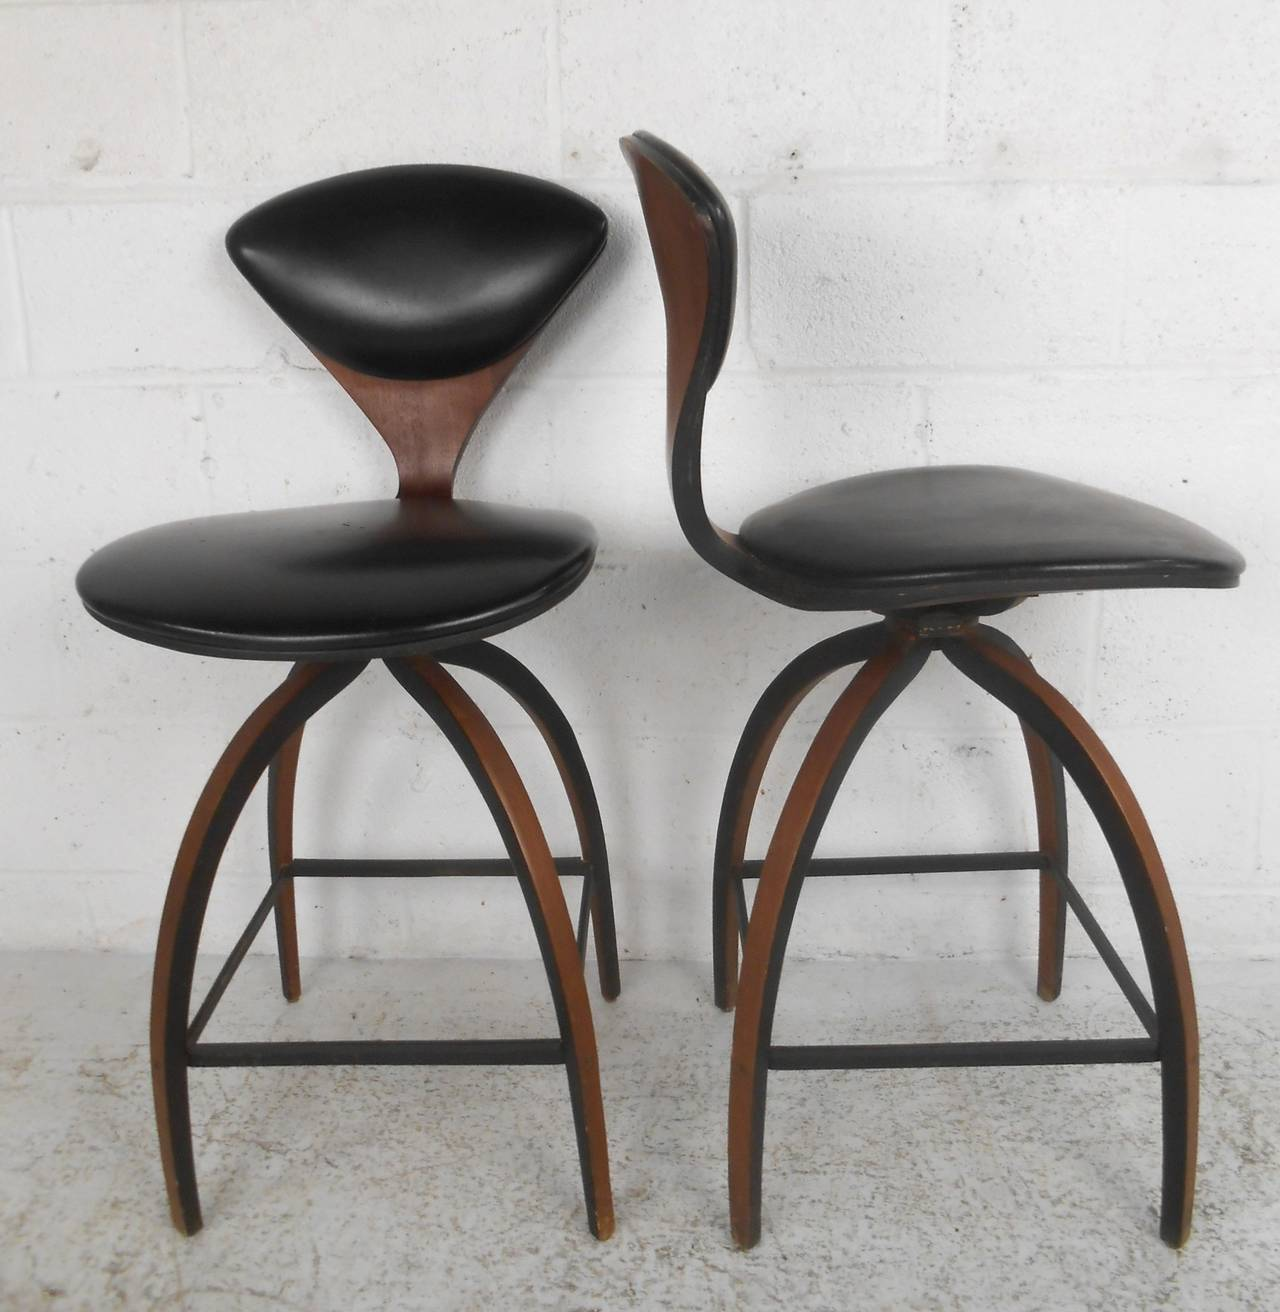 Pair of Mid-Century Modern Plycraft Bar Stools by Norman Cherner 3